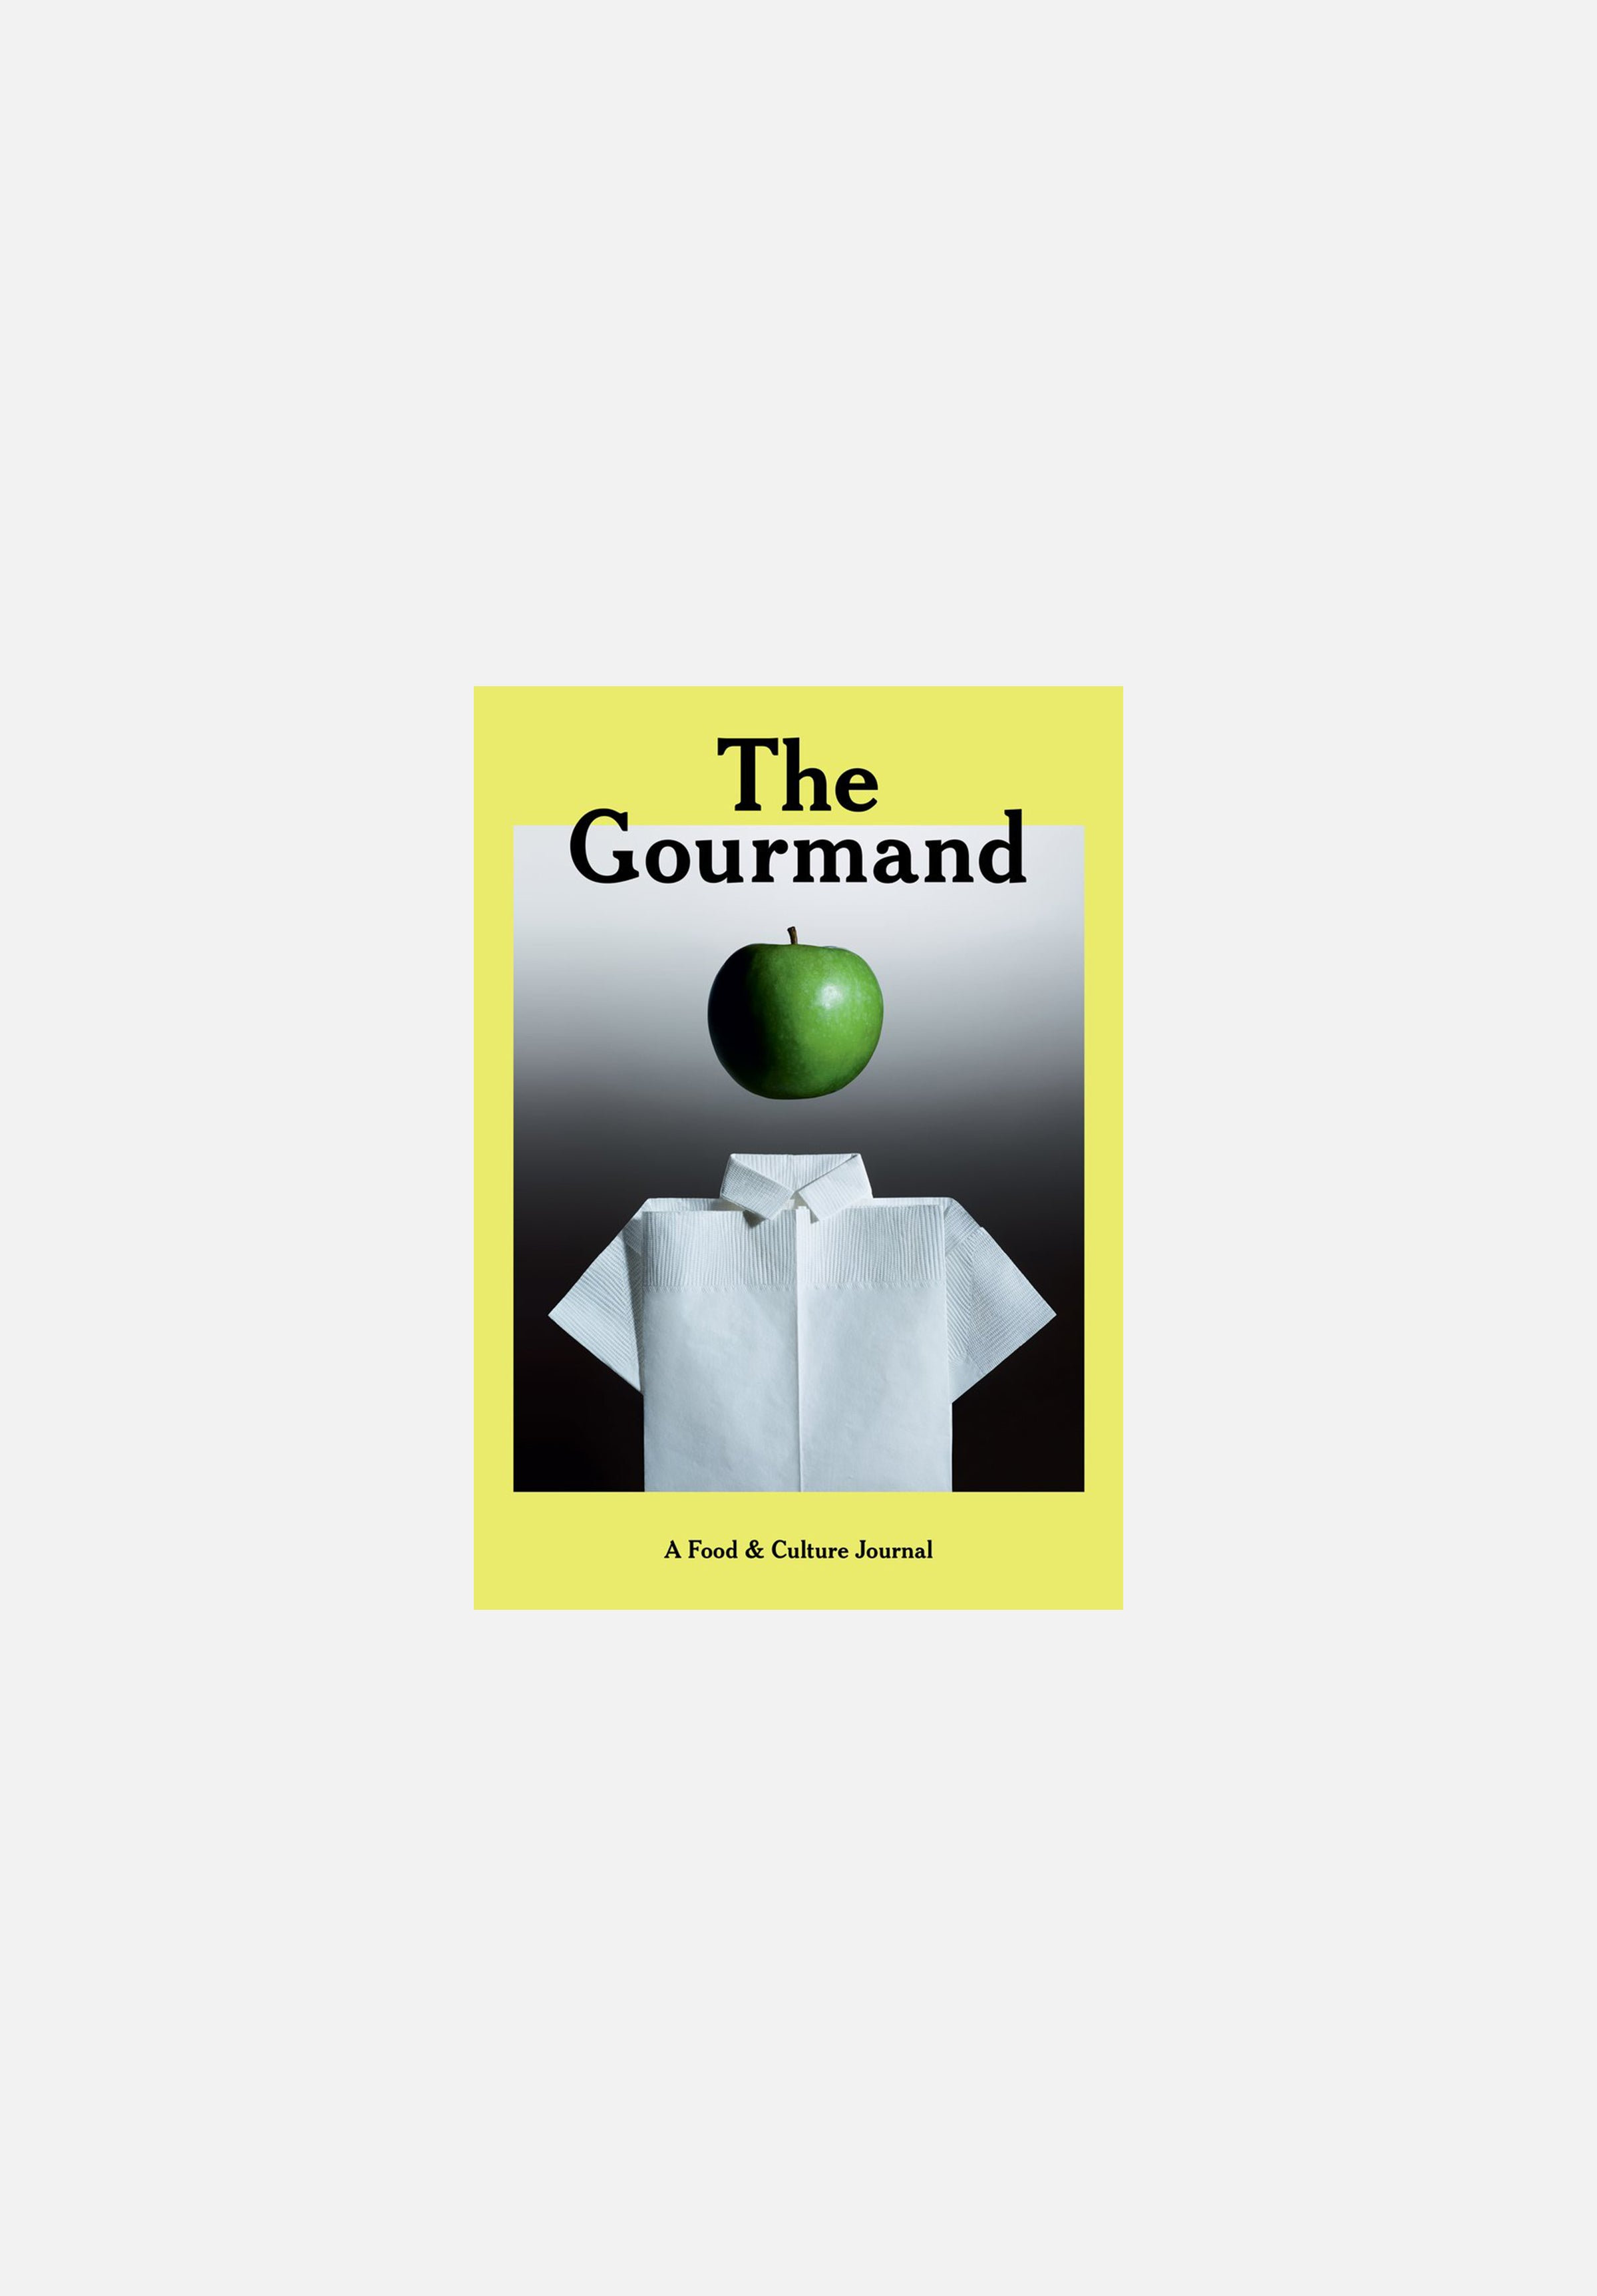 the gourmand issue 11 toronto canada